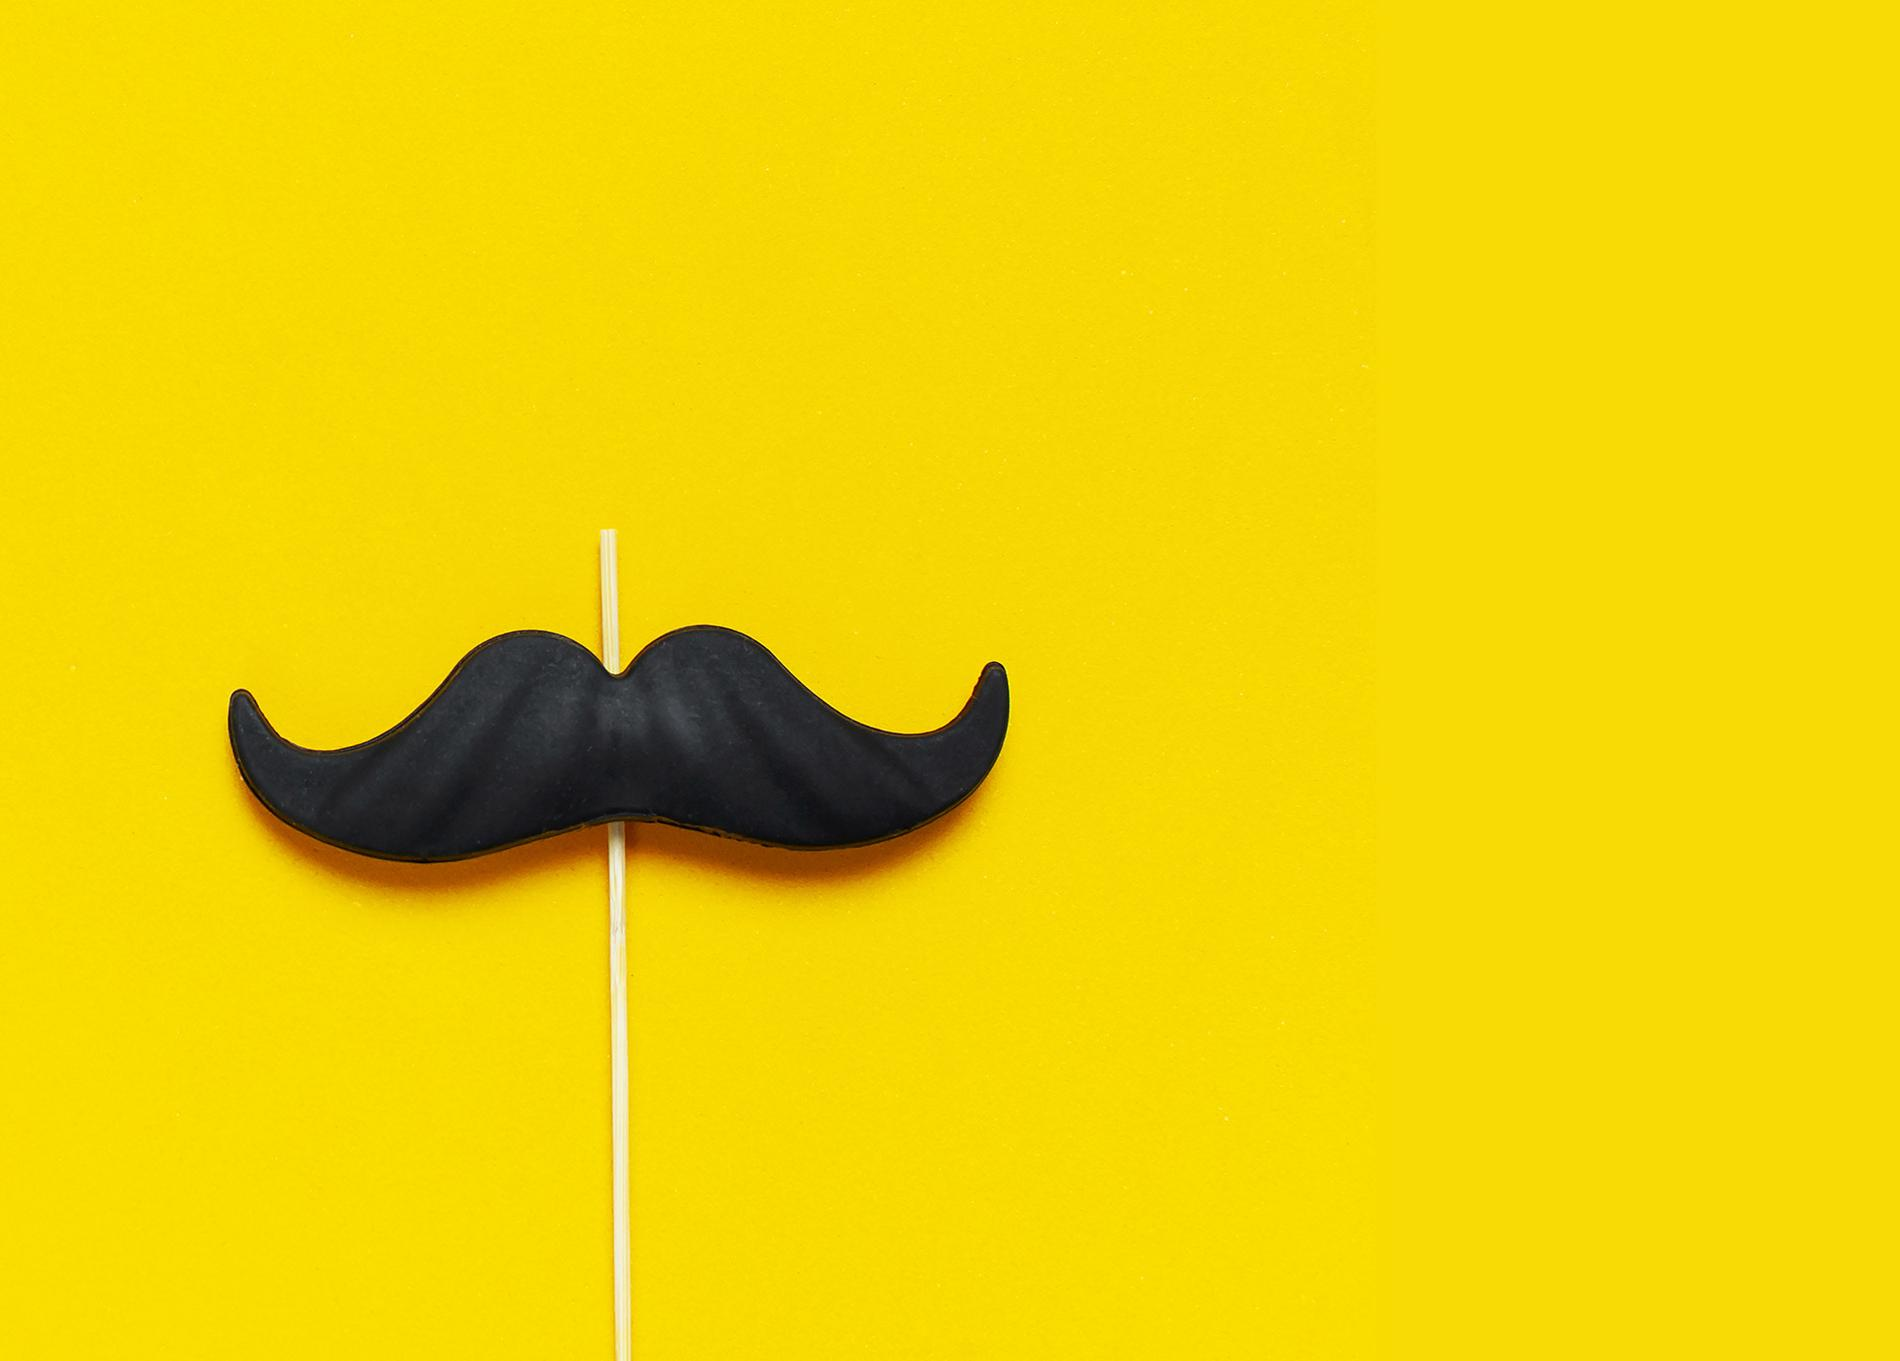 mustache against a yellow background